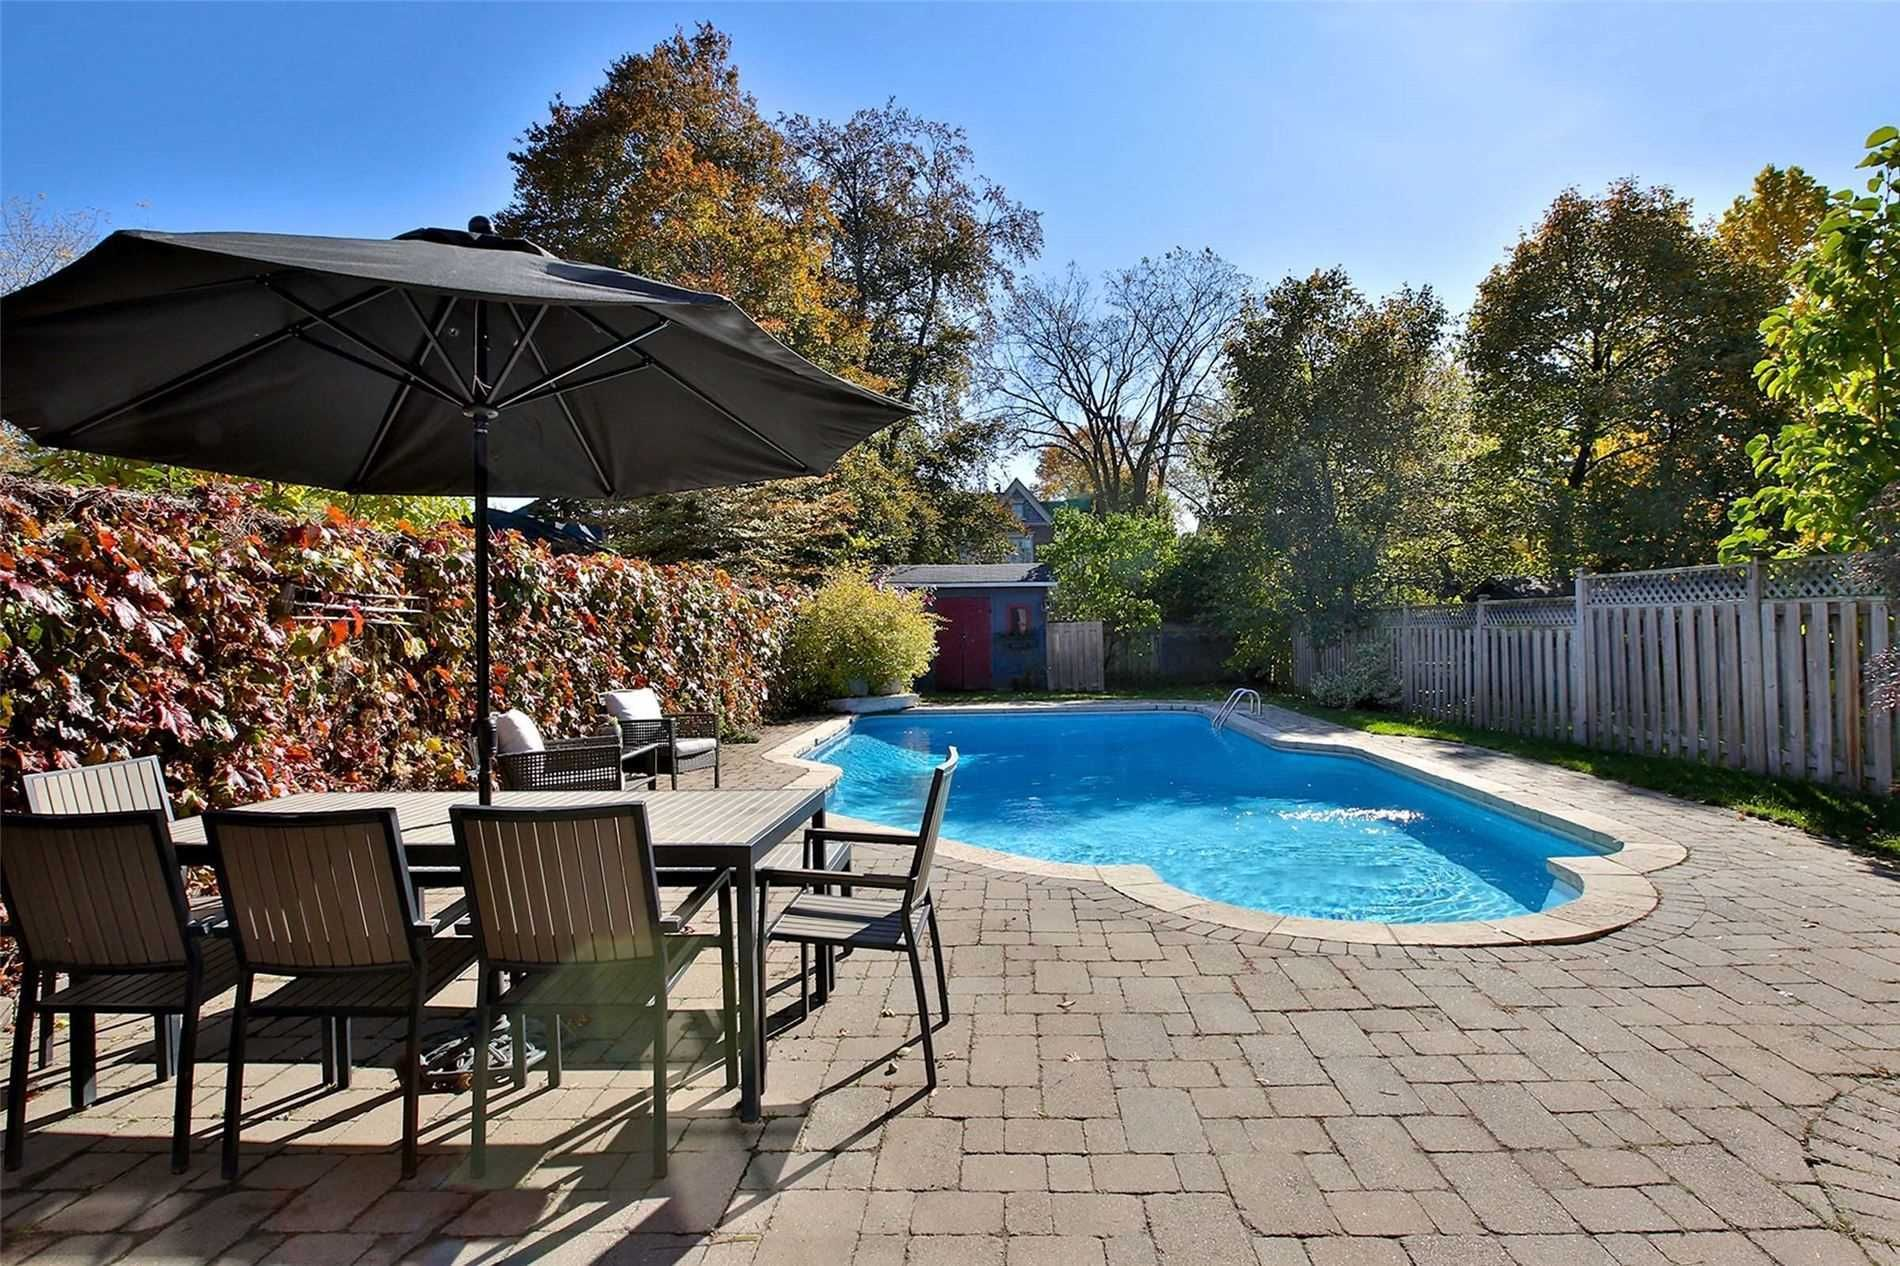 Photo 19: Photos: 181 W Glengrove Avenue in Toronto: Lawrence Park South House (2-Storey) for sale (Toronto C04)  : MLS®# C4633543